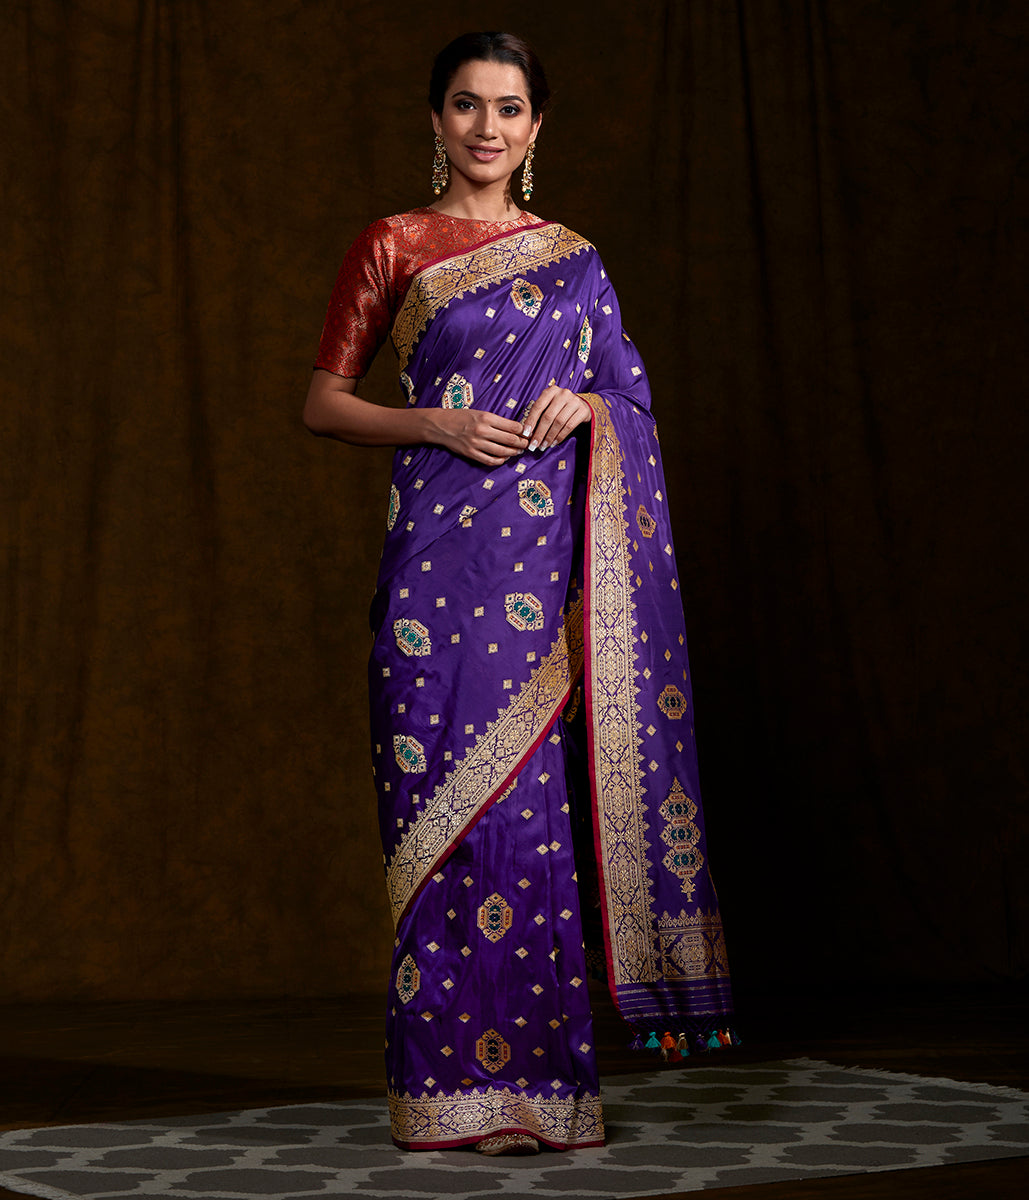 Handwoven katan silk saree with mughal inspired motifs